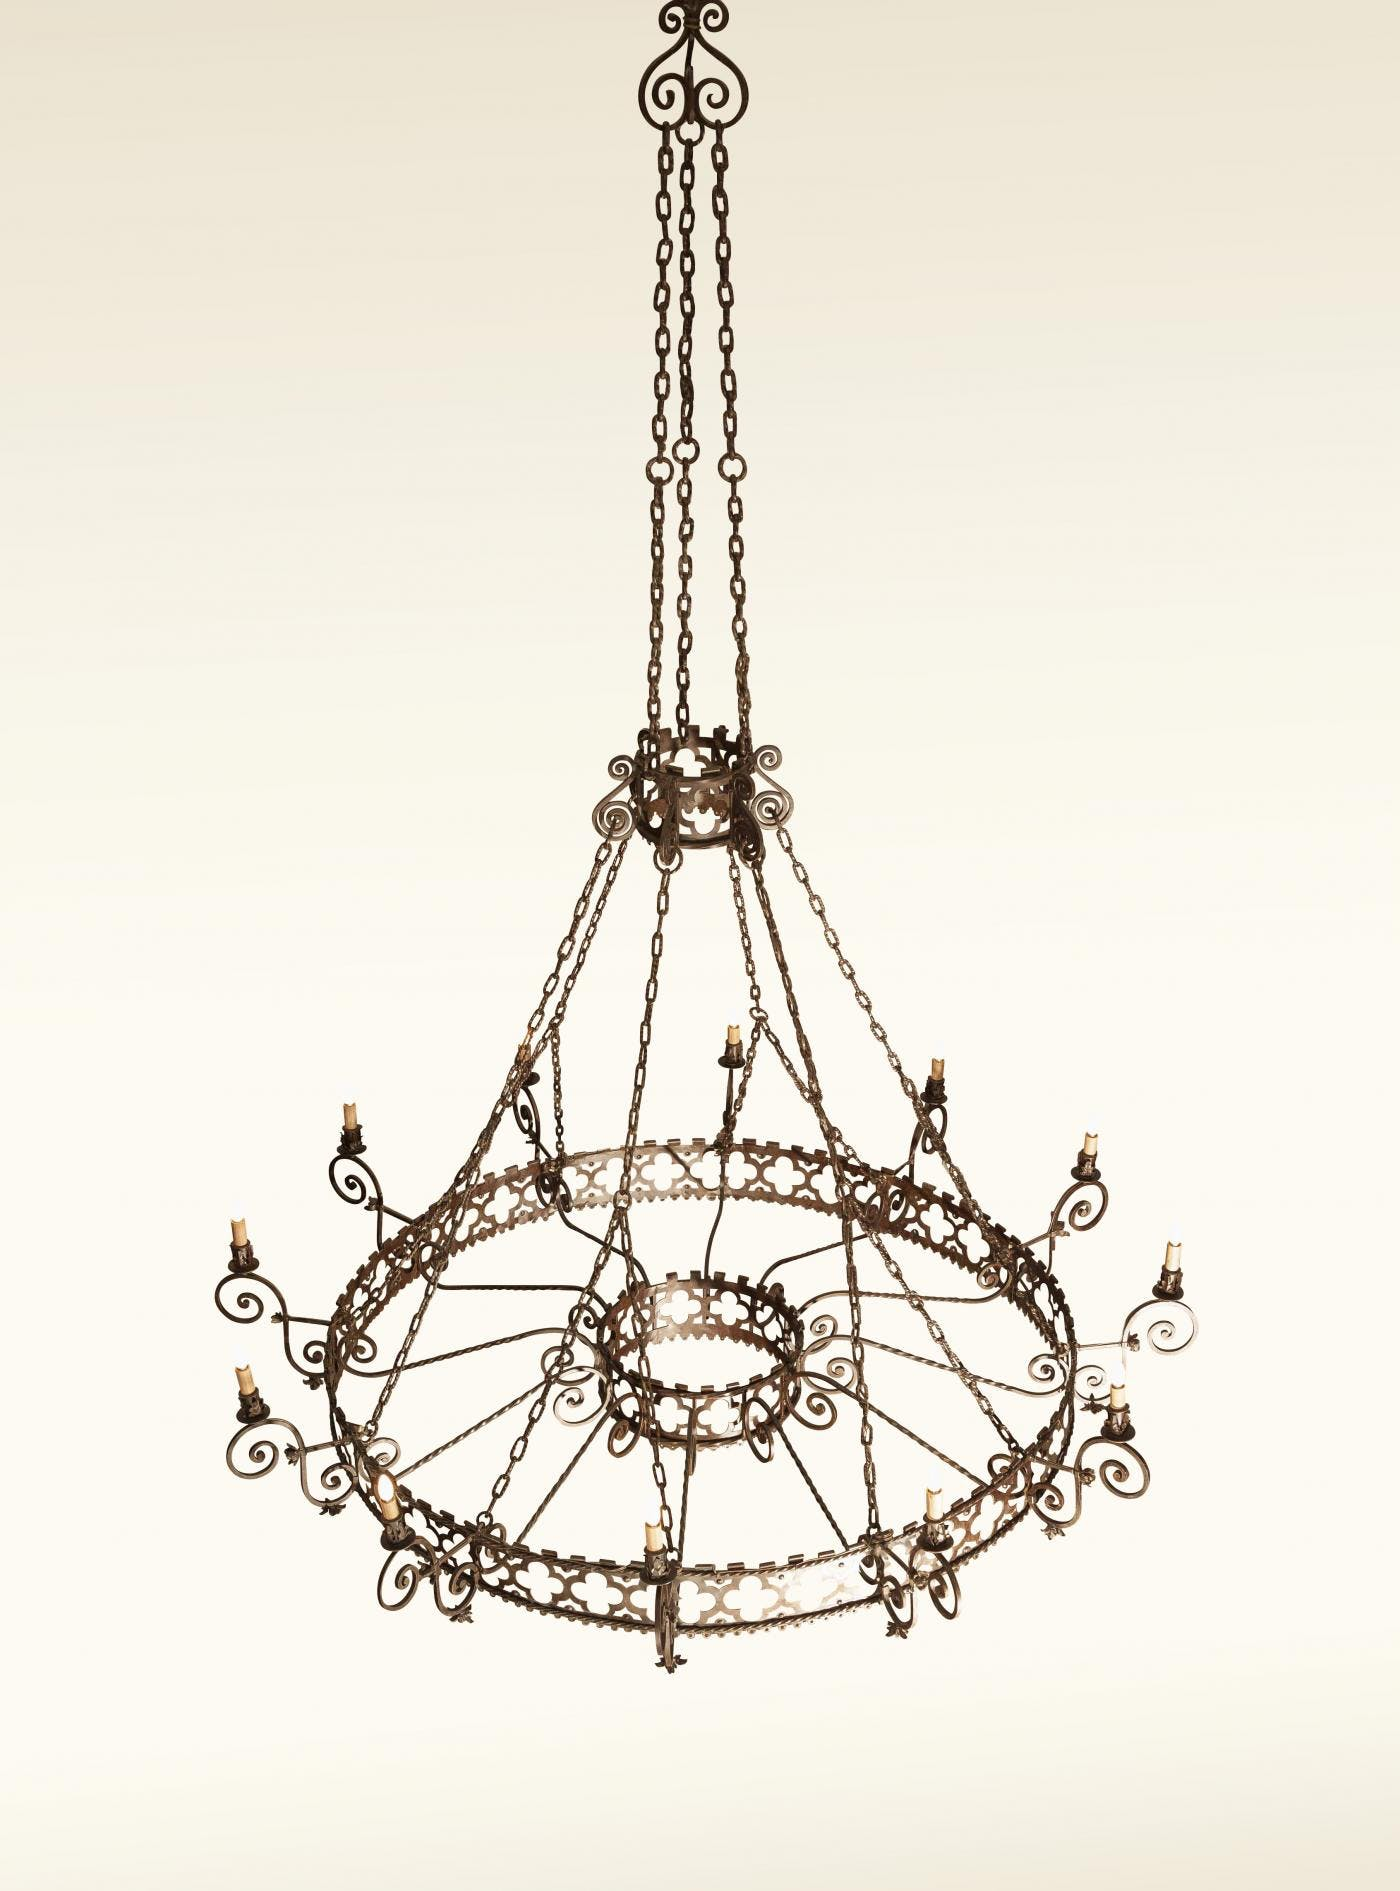 Grand Colonial Wrought Iron Chandelier 12 Light The Blue Door